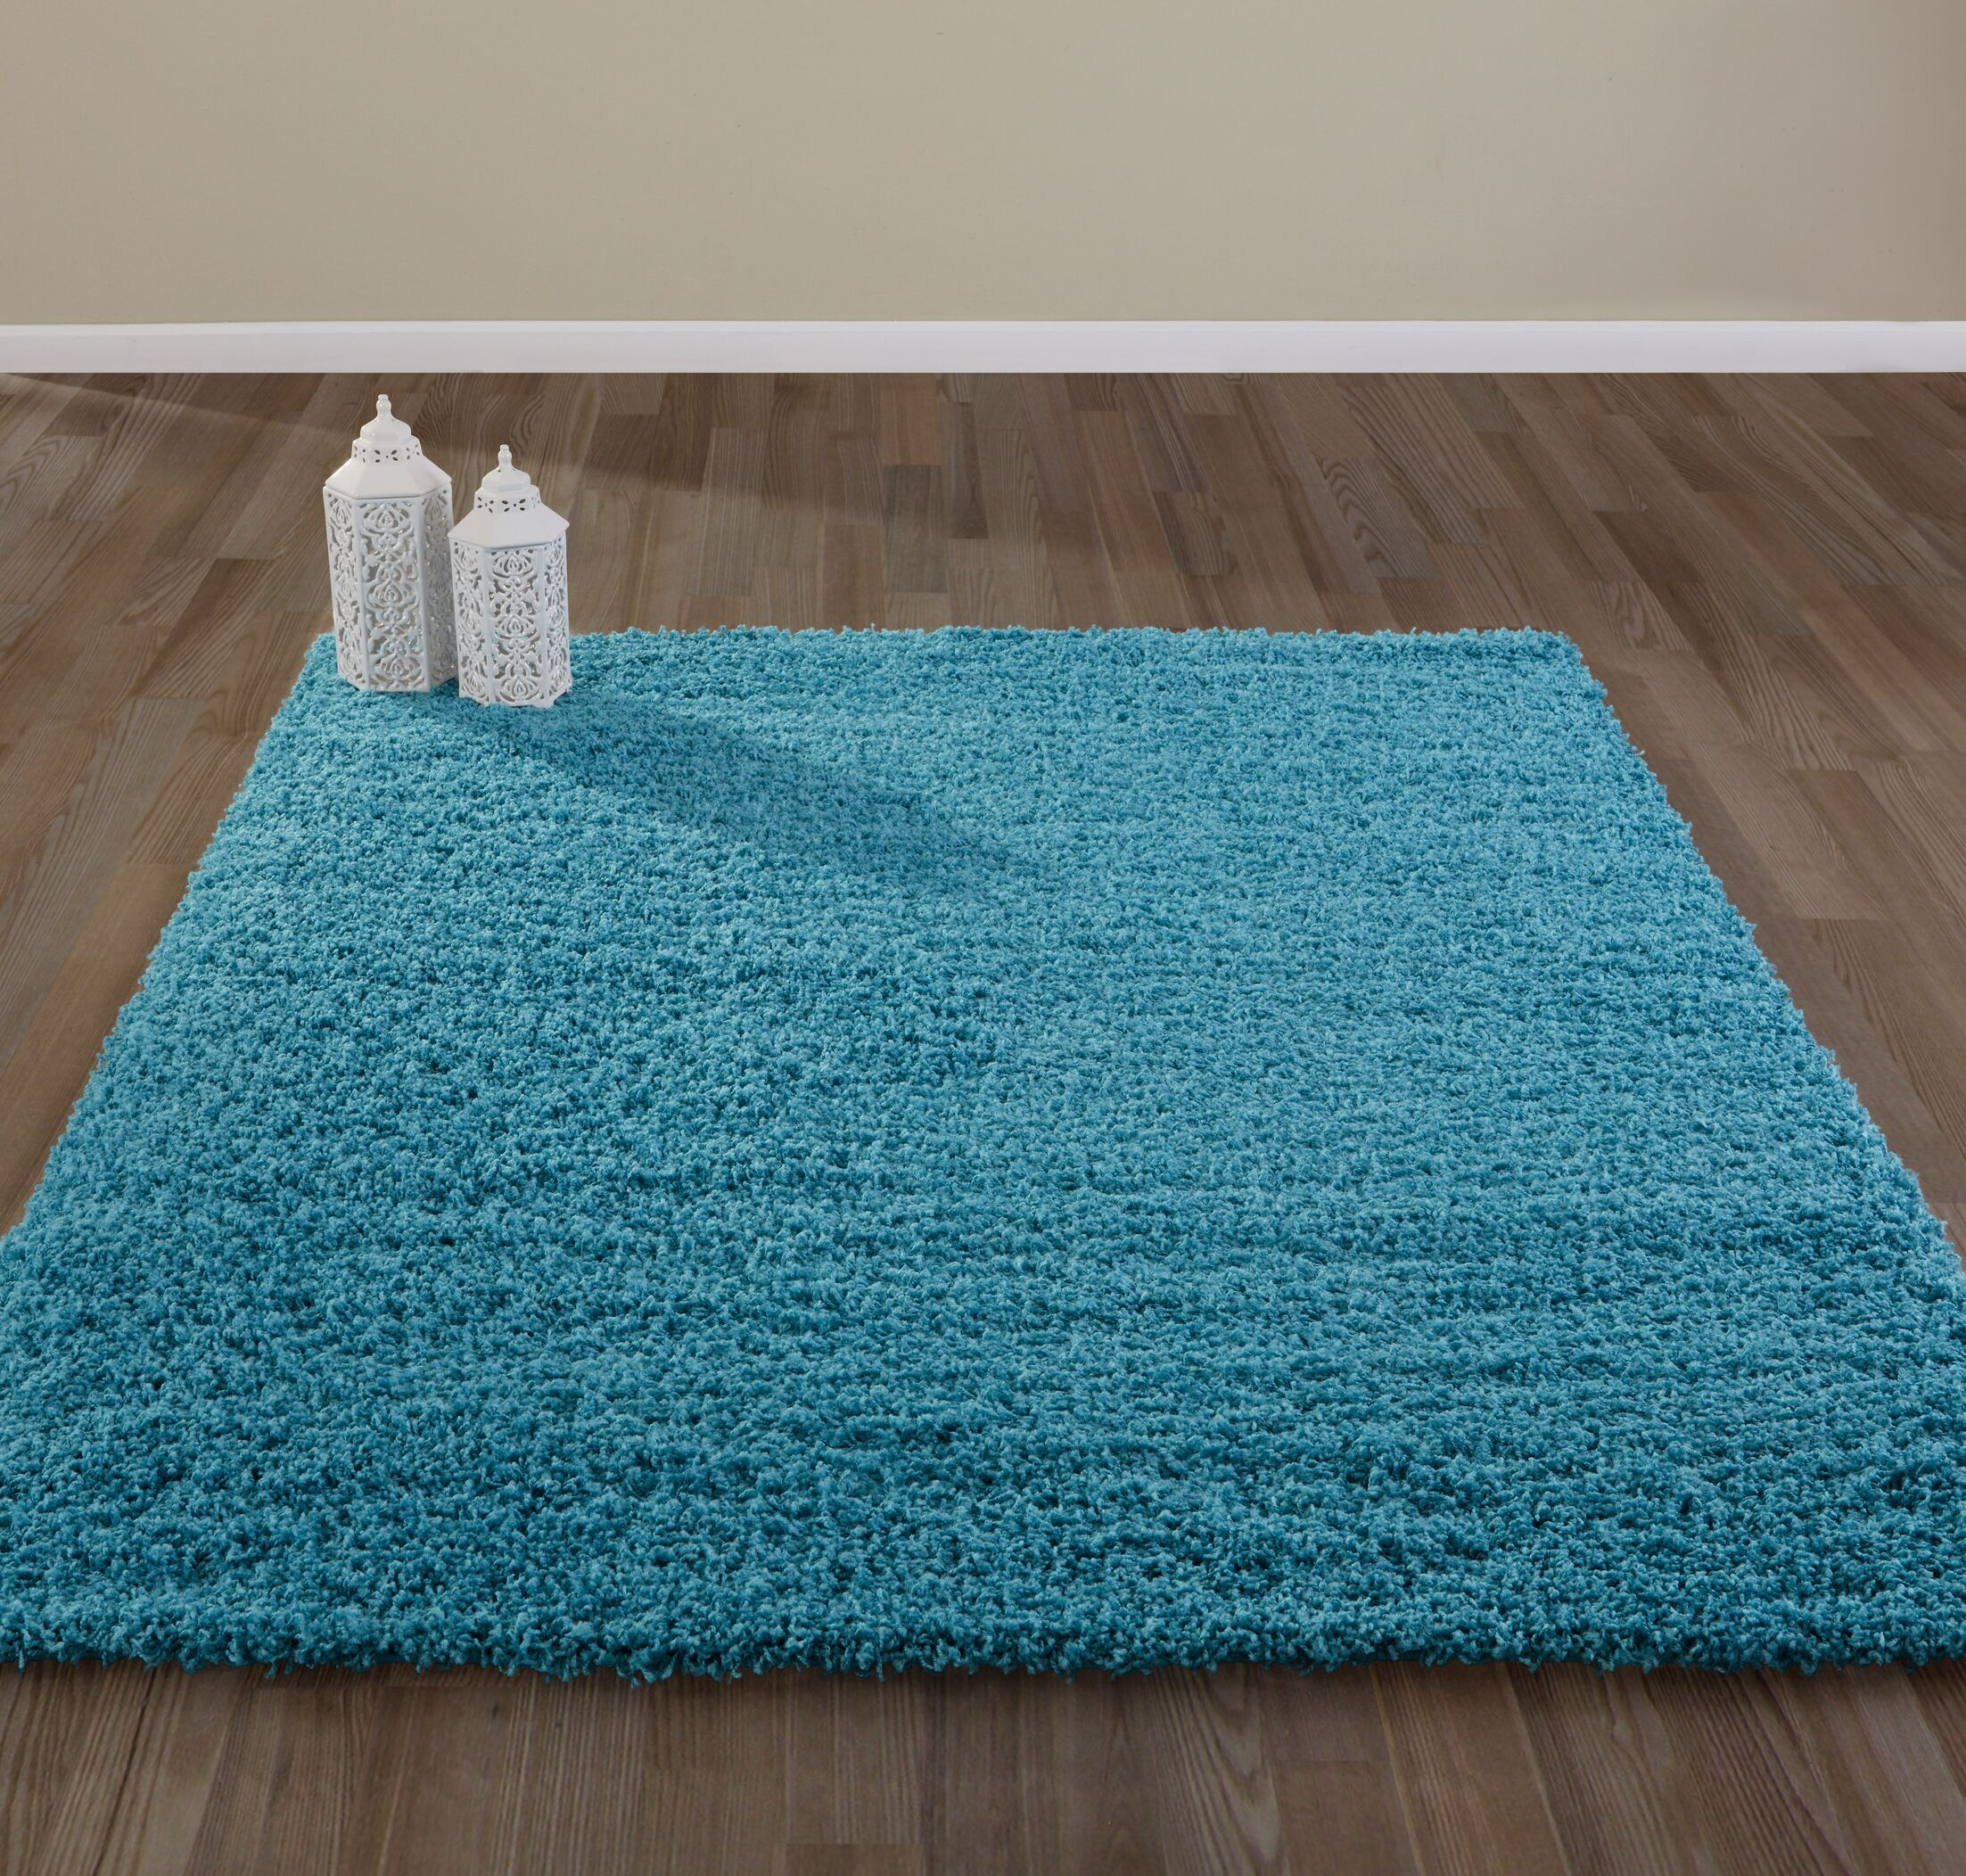 Bostrom Shag Blue Area Rug Rug Size: Rectangle 8' x 10'